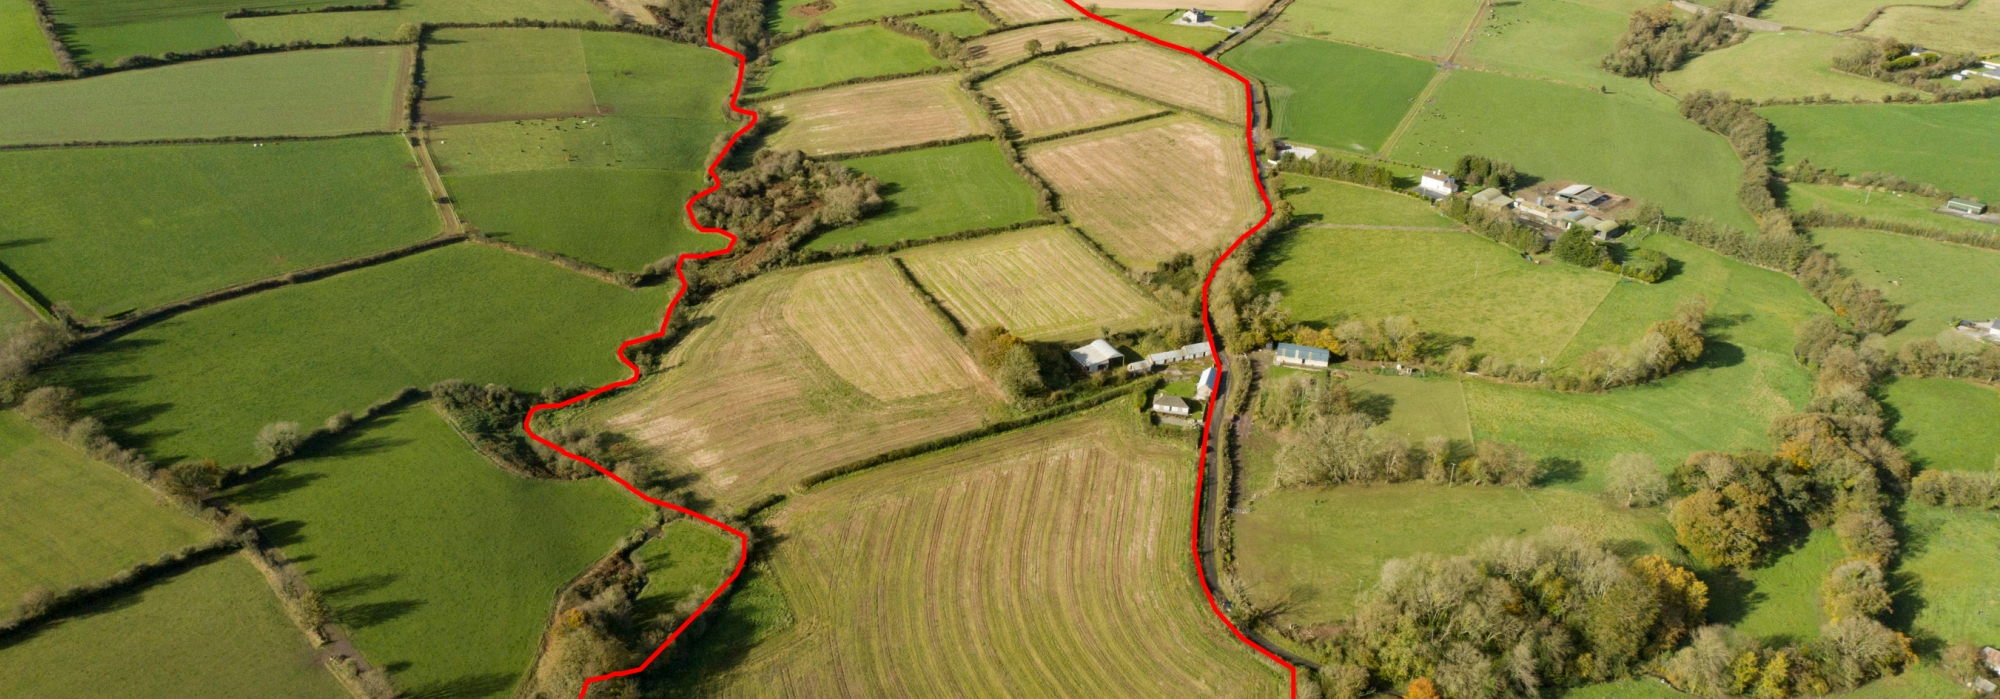 Bridepark, Conna, Co. Cork, P51 C6R2 – Agricultural Land For Sale | 67.00 acres (27.11 hectares)